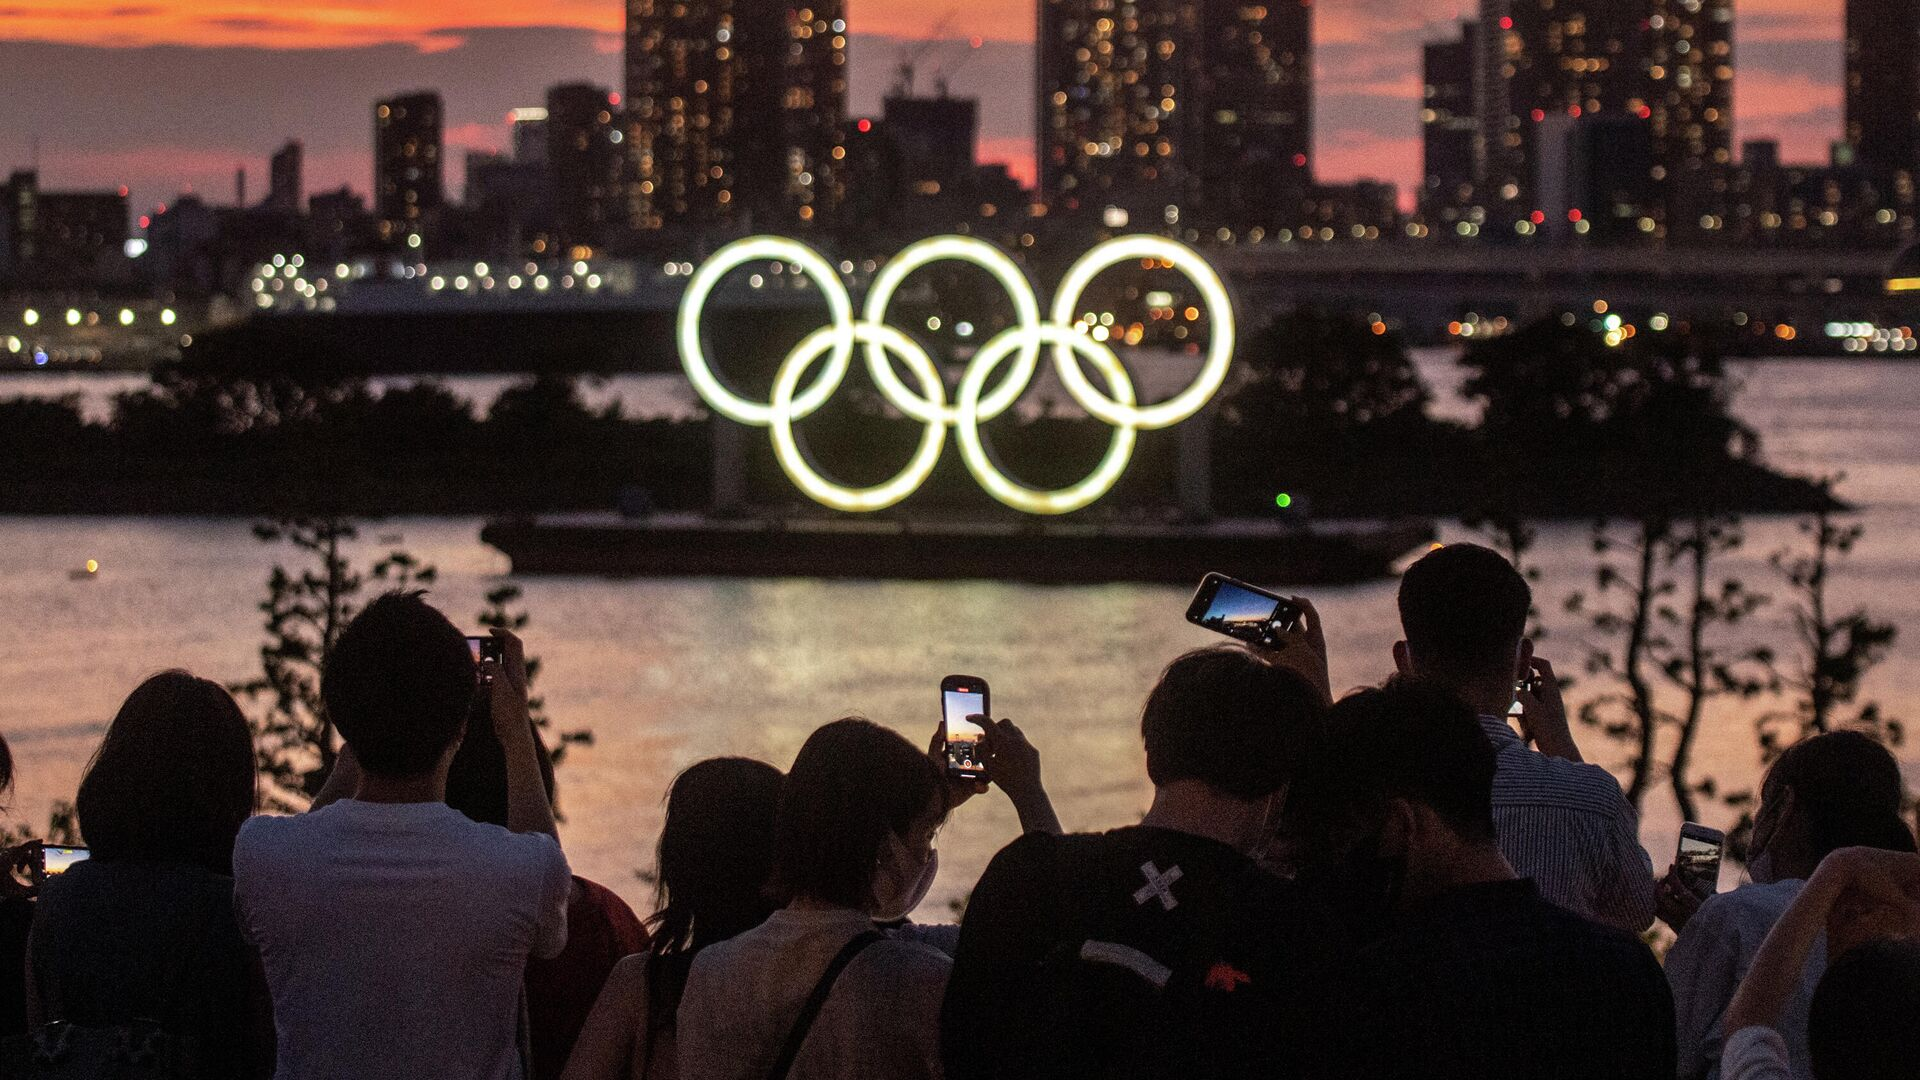 People take pictures as the Olympic rings lit up at dusk on the Odaiba waterfront in Tokyo on July 22, 2021 on the eve of the start of the Tokyo 2020 Olympic Games. (Photo by Philip FONG / AFP) - РИА Новости, 1920, 22.07.2021